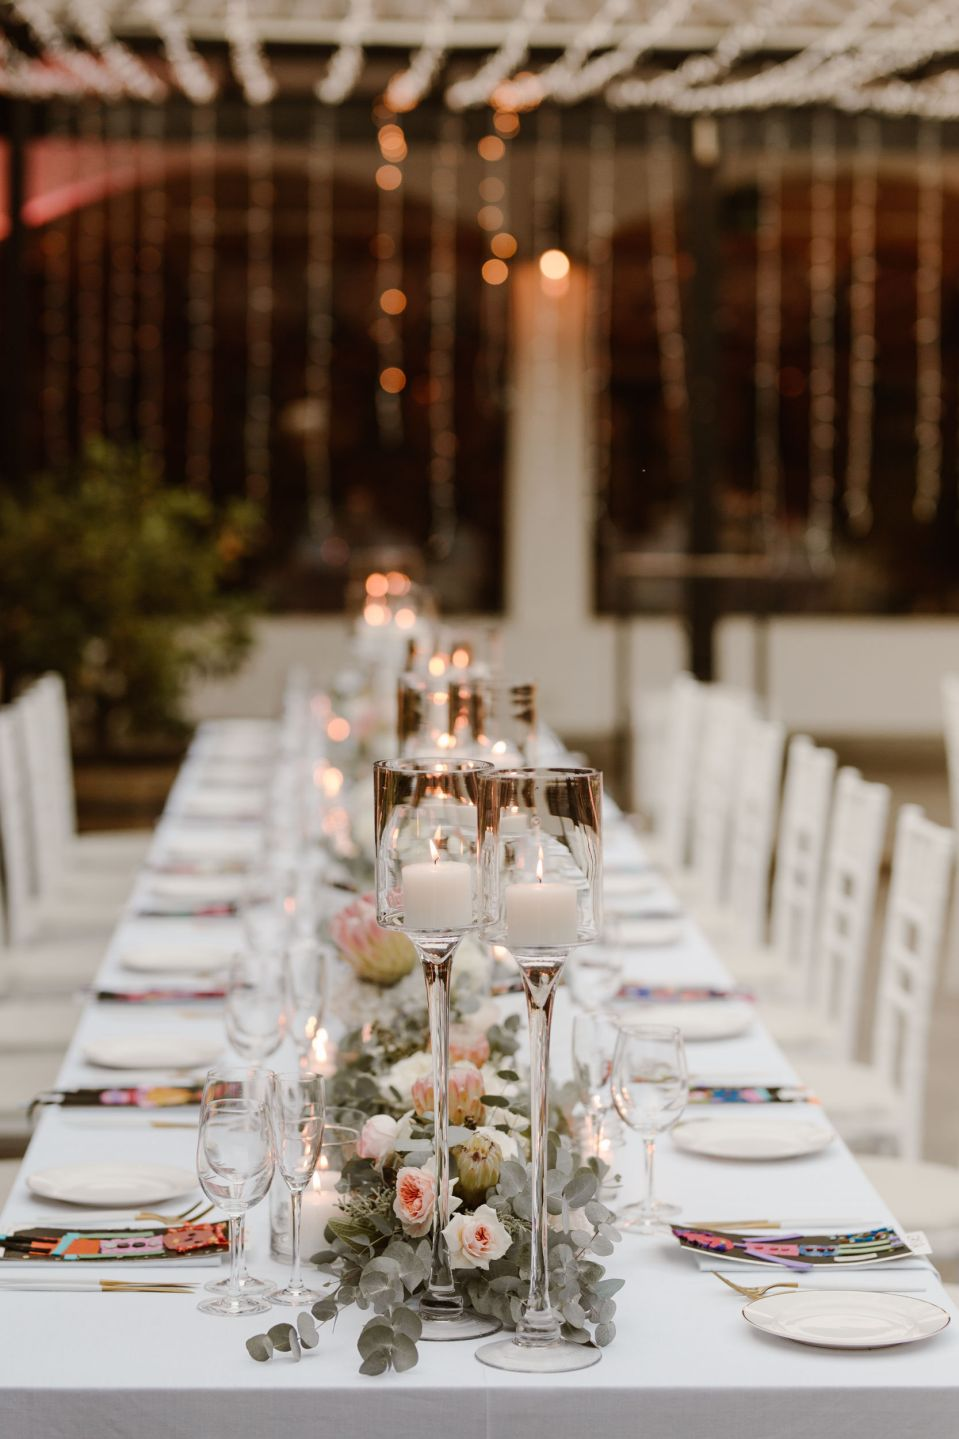 Pictured is the table settings, featuring local florals and candles. The couple wanted minimal, simple wedding decor which incorporated three cultures in an understated style.